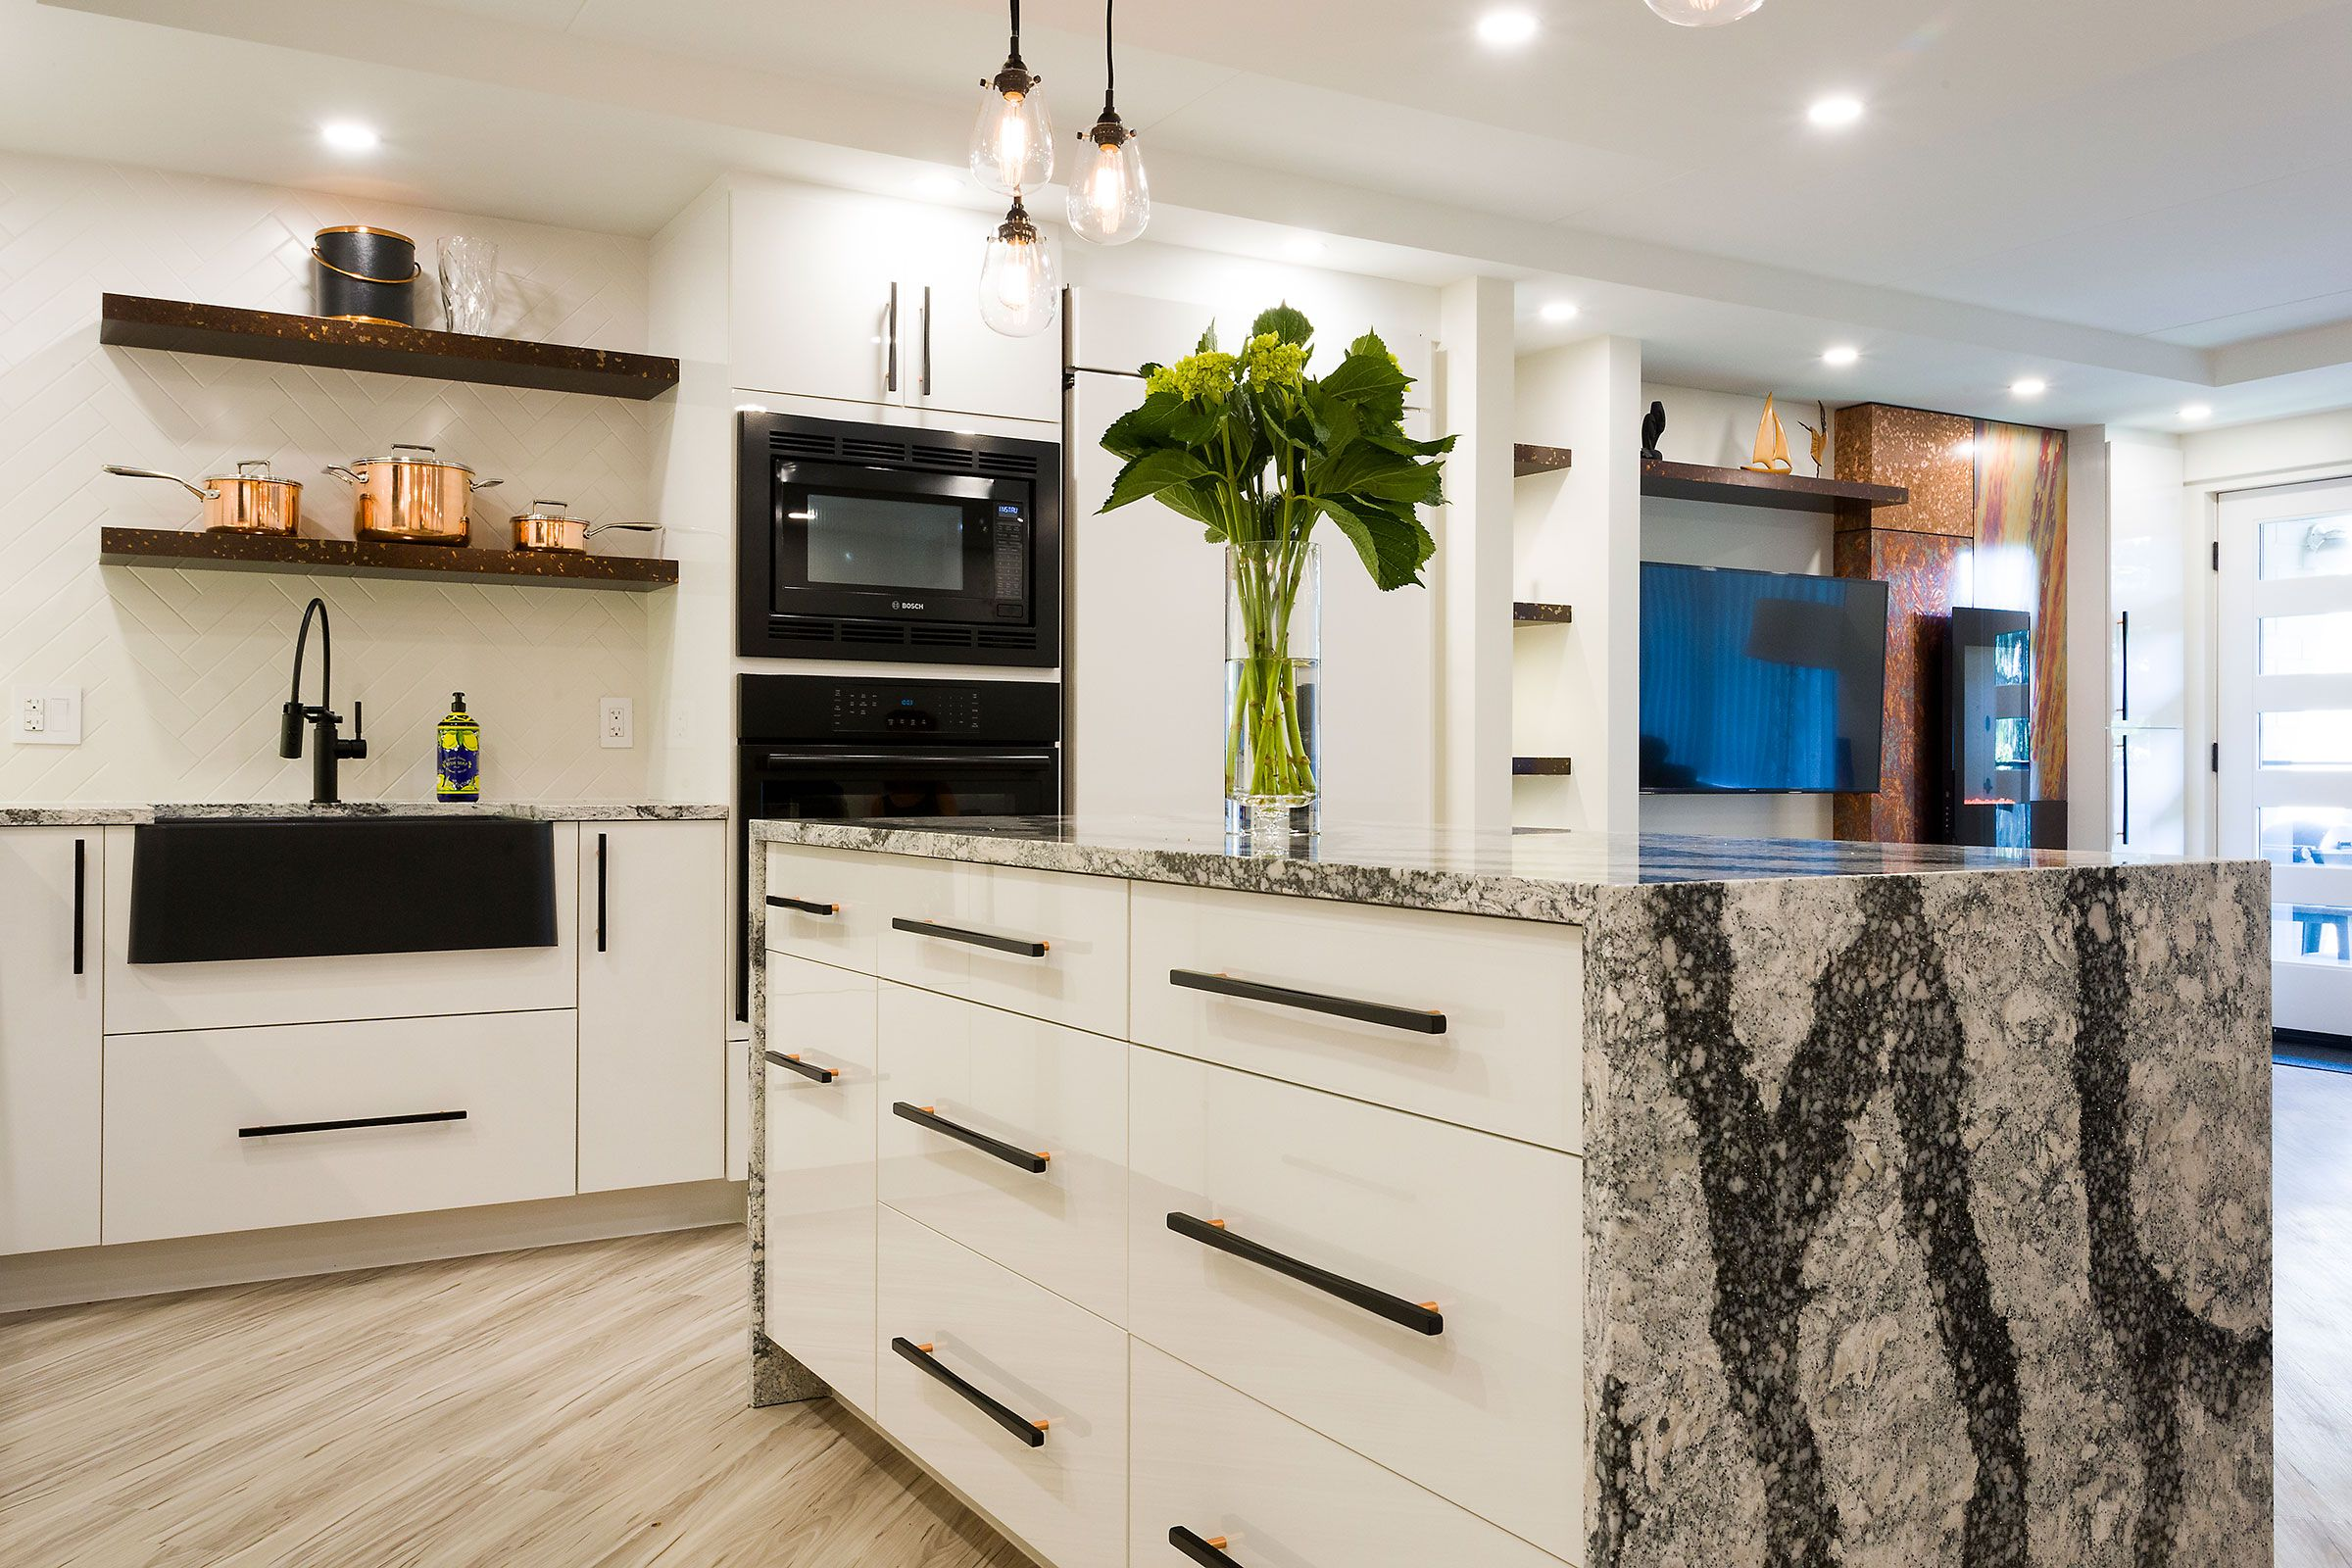 For this condo renovation, the walls between kitchen and living room ...